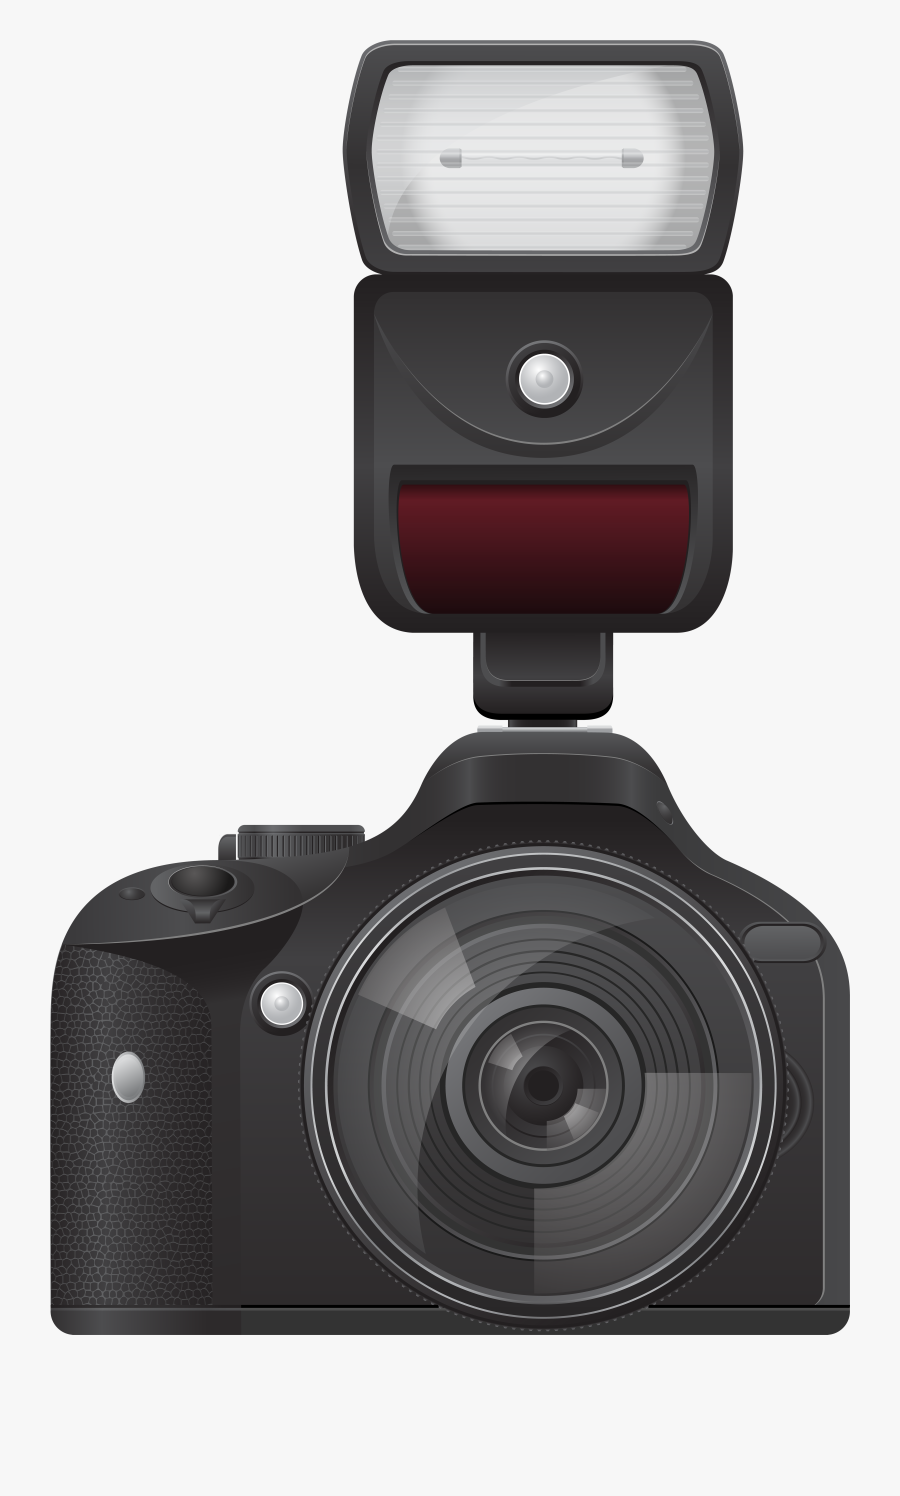 Camera With Flash Transparent Png Image Png Download - Camera Flash Png Gif, Transparent Clipart